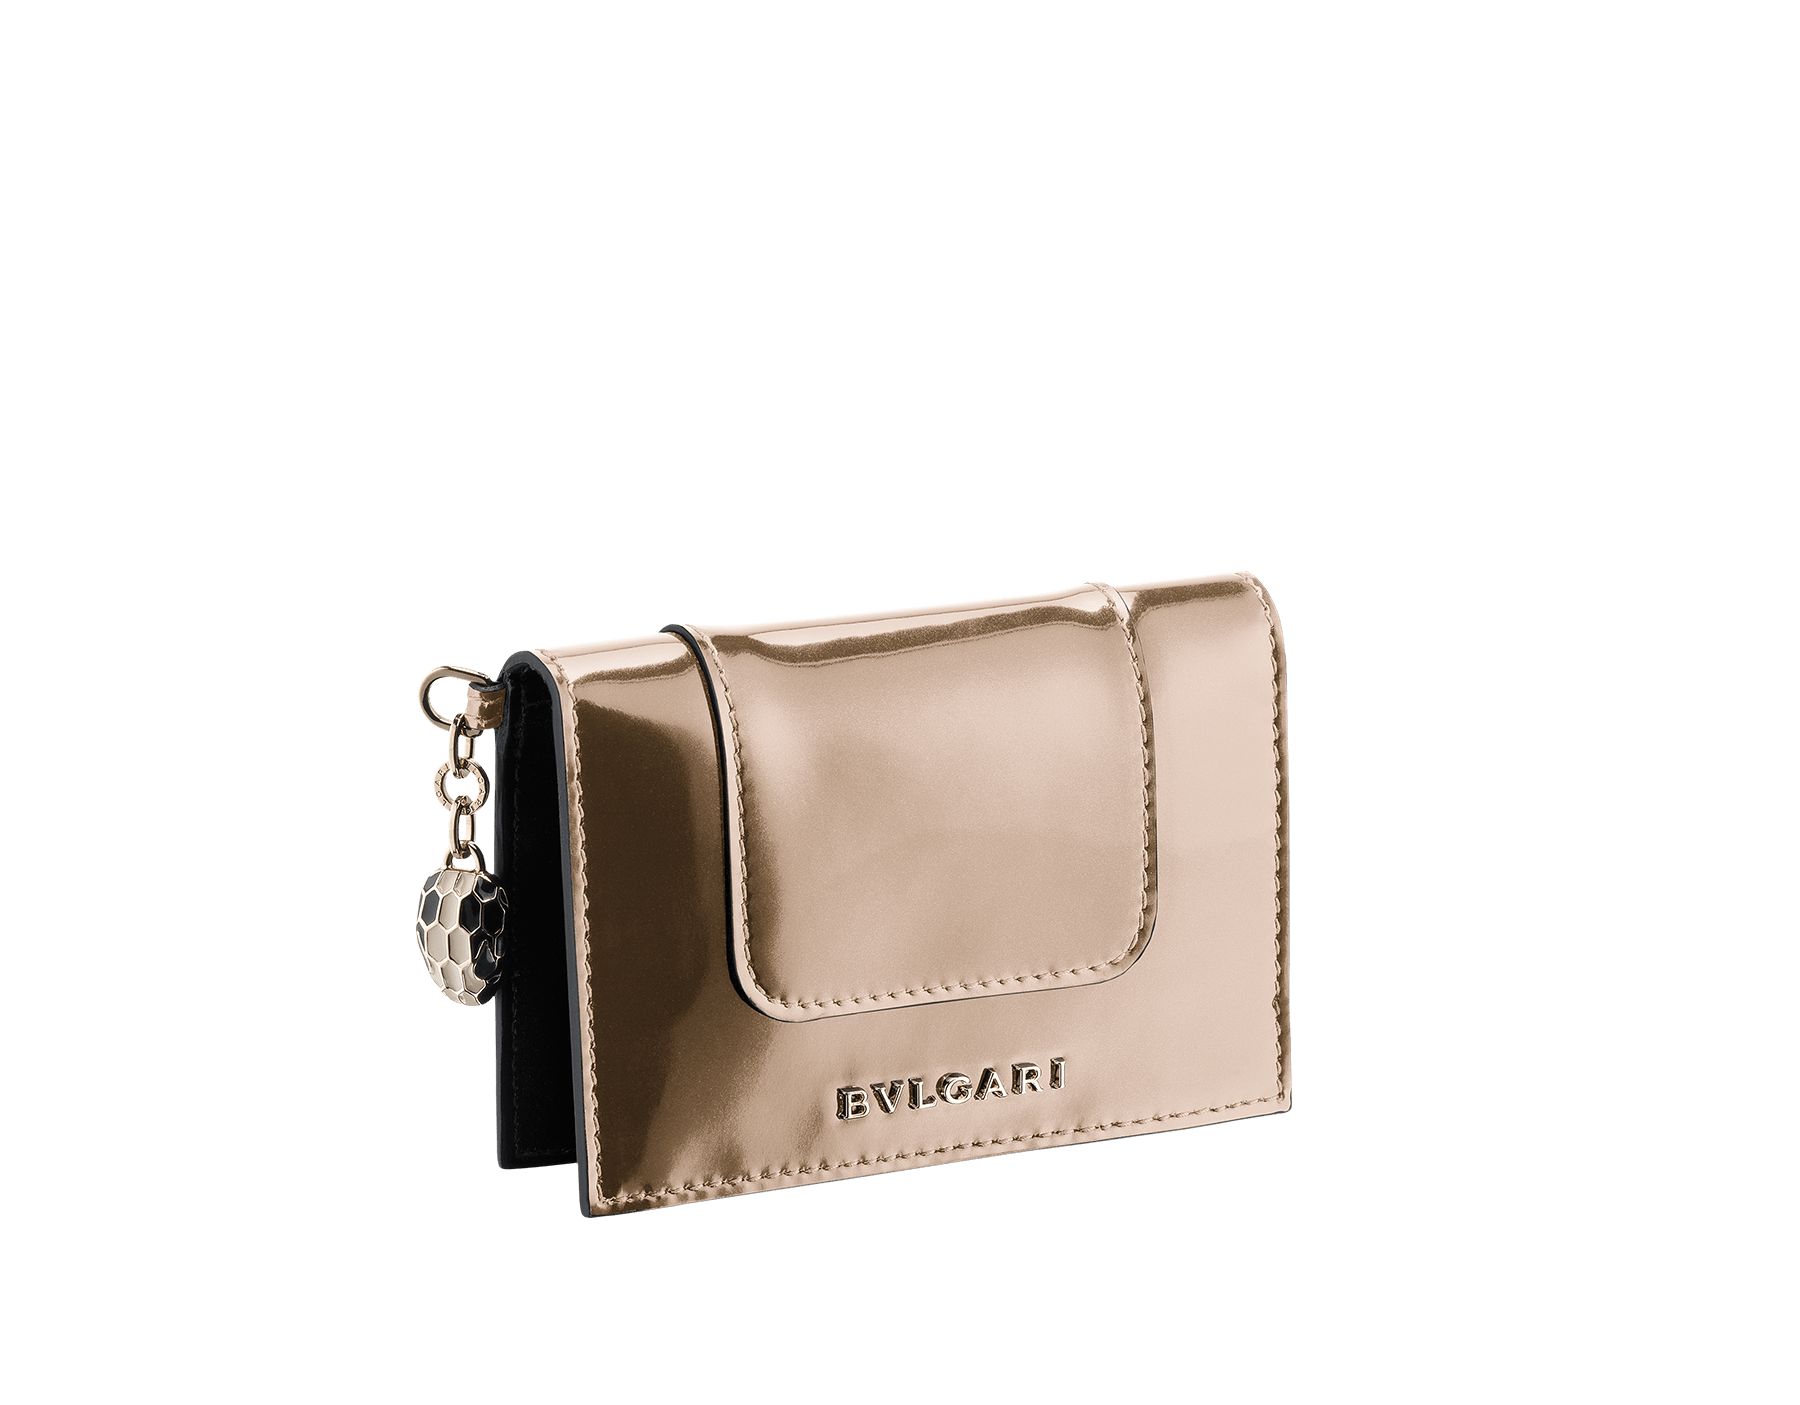 Folded credit card holder in antique bronze calf leather and black calf leather, with brass light gold plated hardware and stud closure. Serpenti head charm in black and white enamel with malachite enamel eyes. 282033 image 1